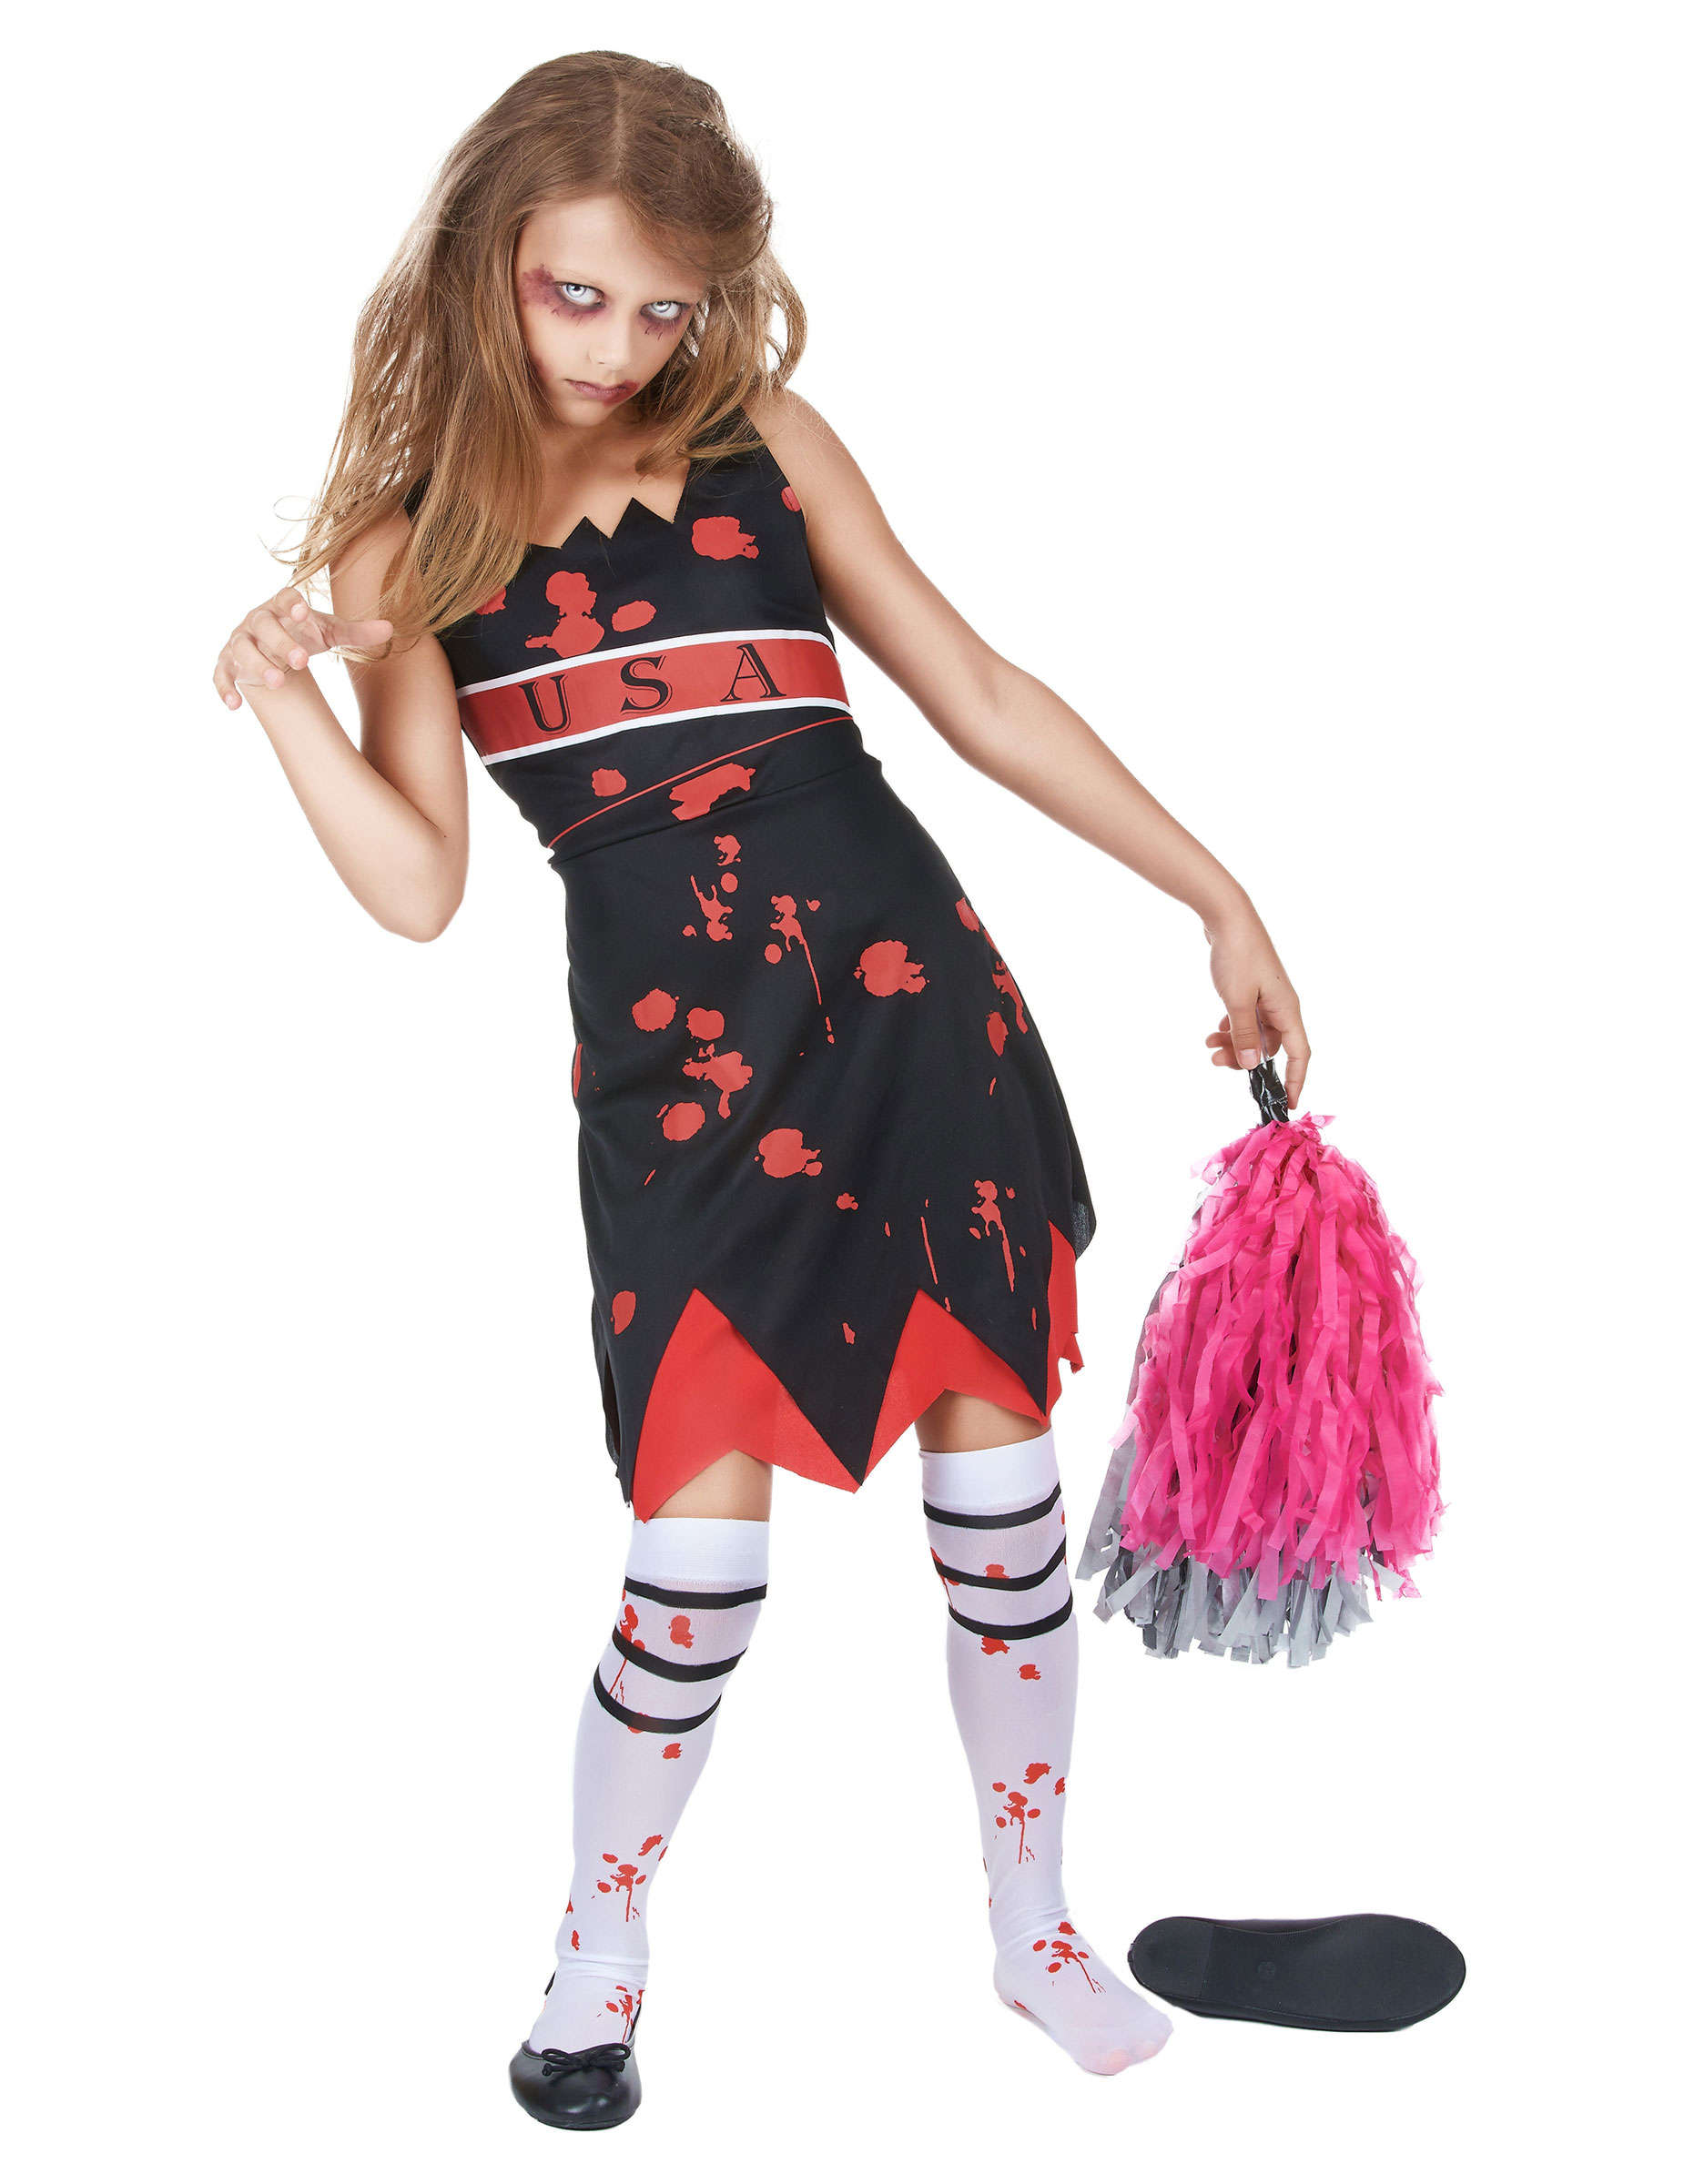 d guisement pompom girl zombie fille halloween deguise. Black Bedroom Furniture Sets. Home Design Ideas